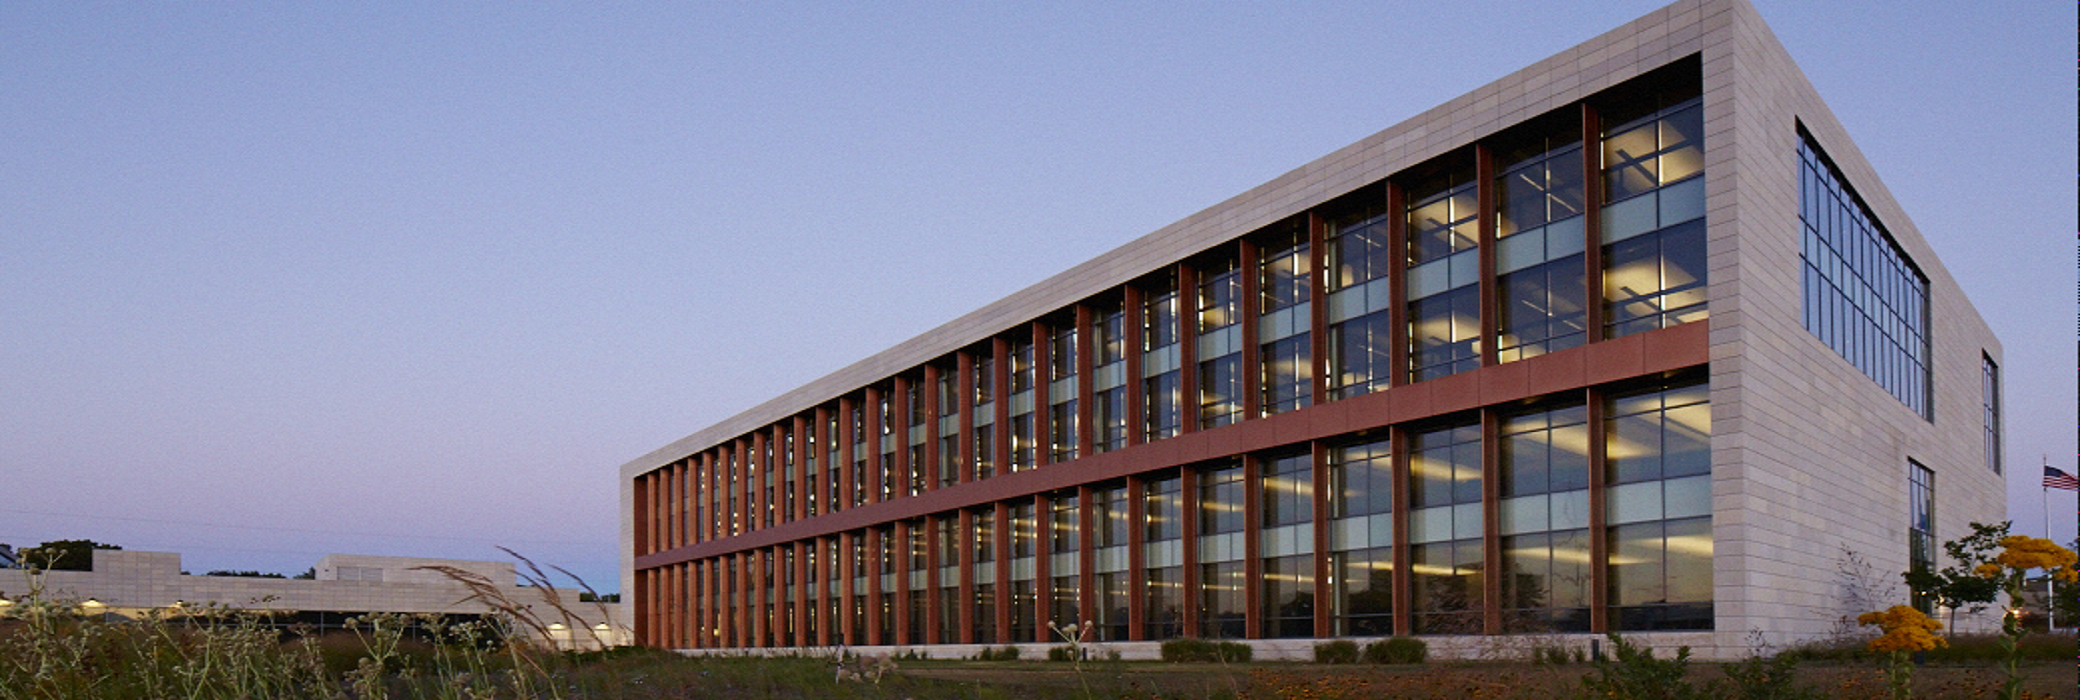 Johnson Controls Building